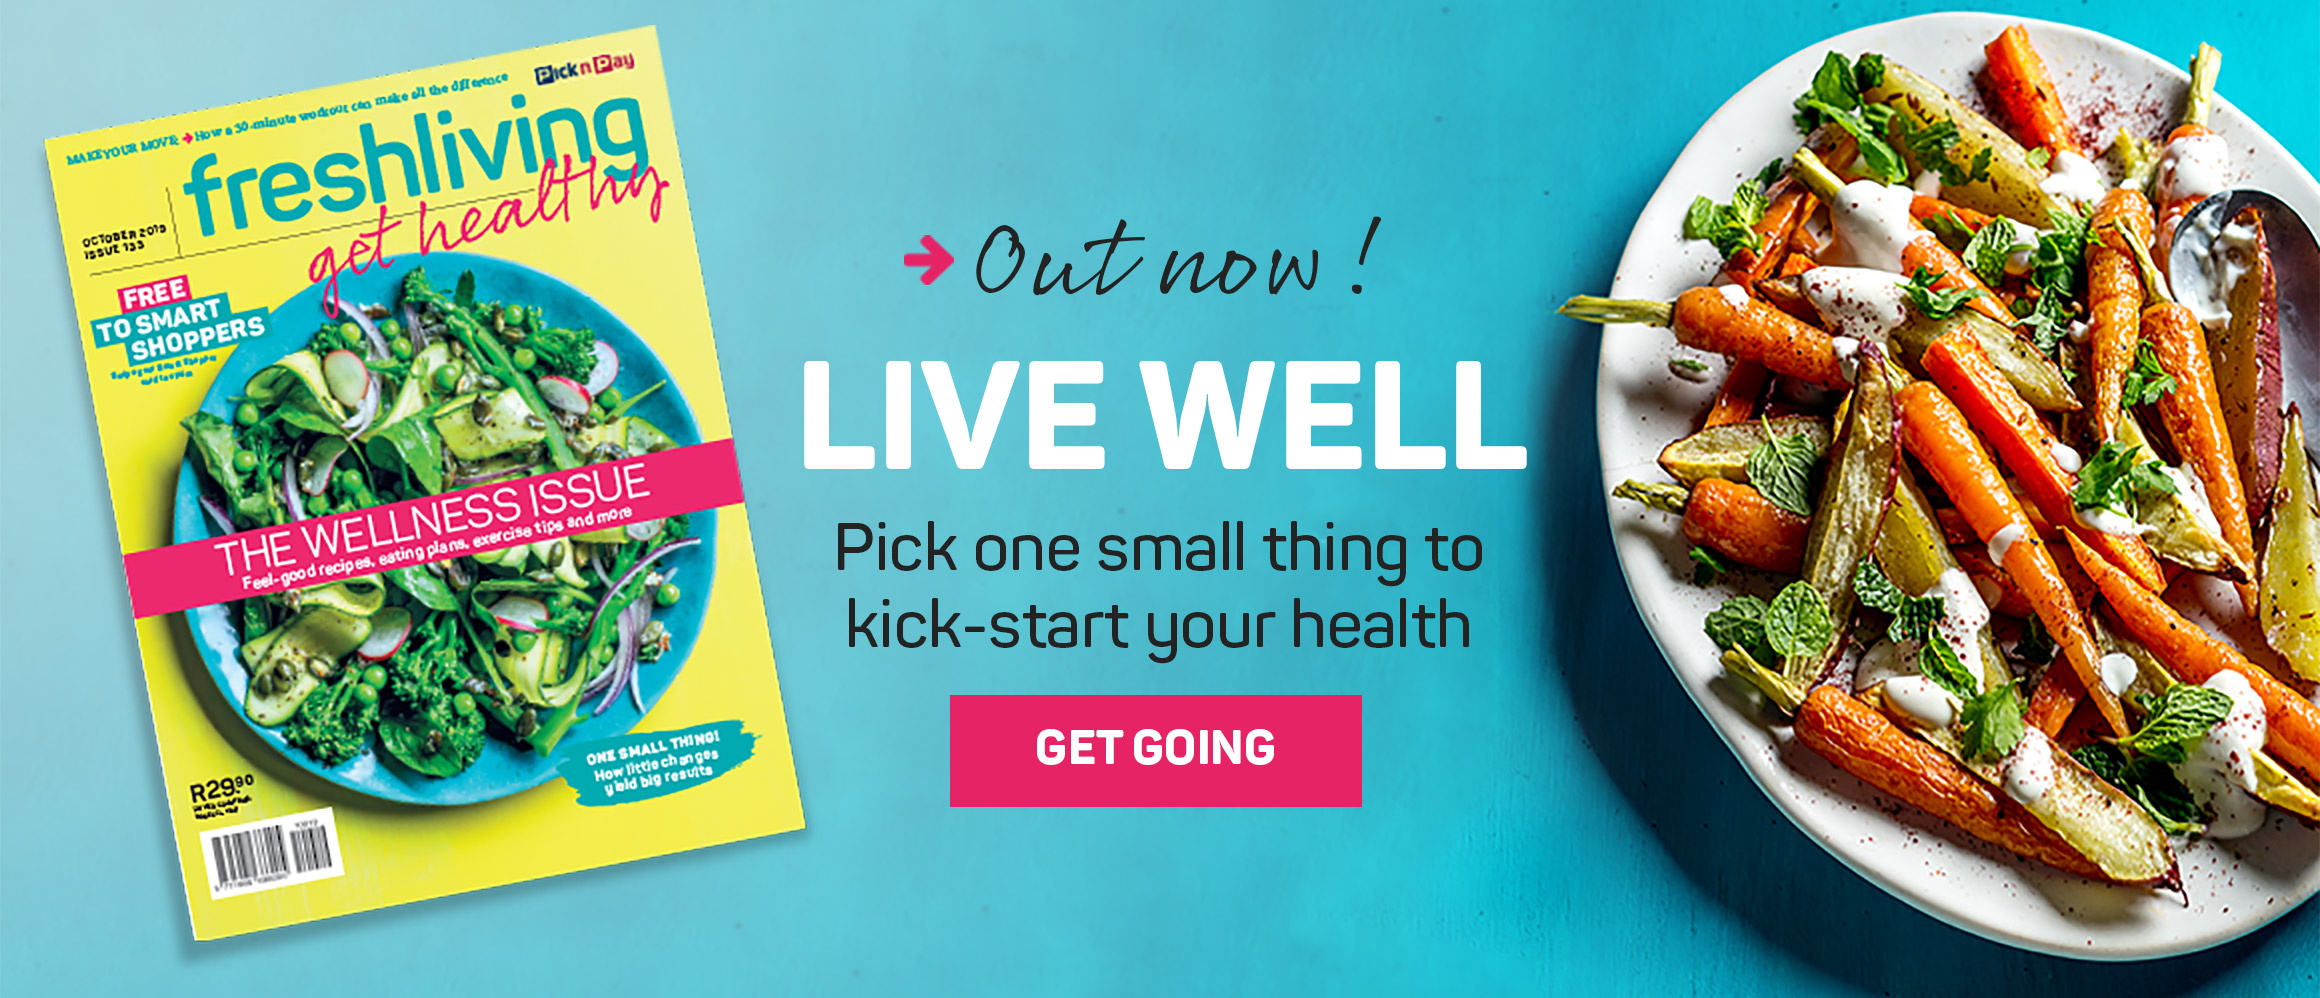 Out now! Live well. Pick one small thing to kick-start your health